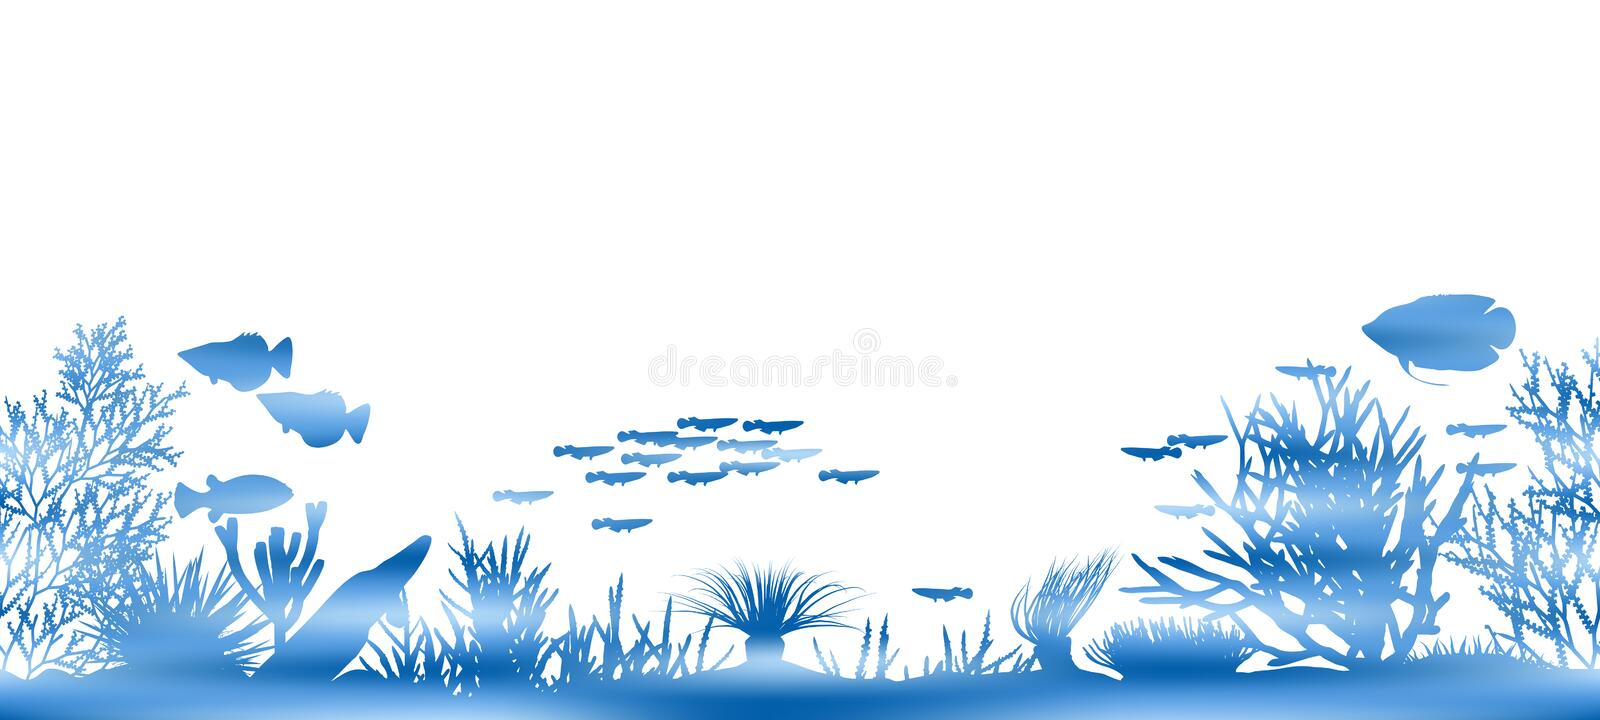 Water coral royalty free illustration